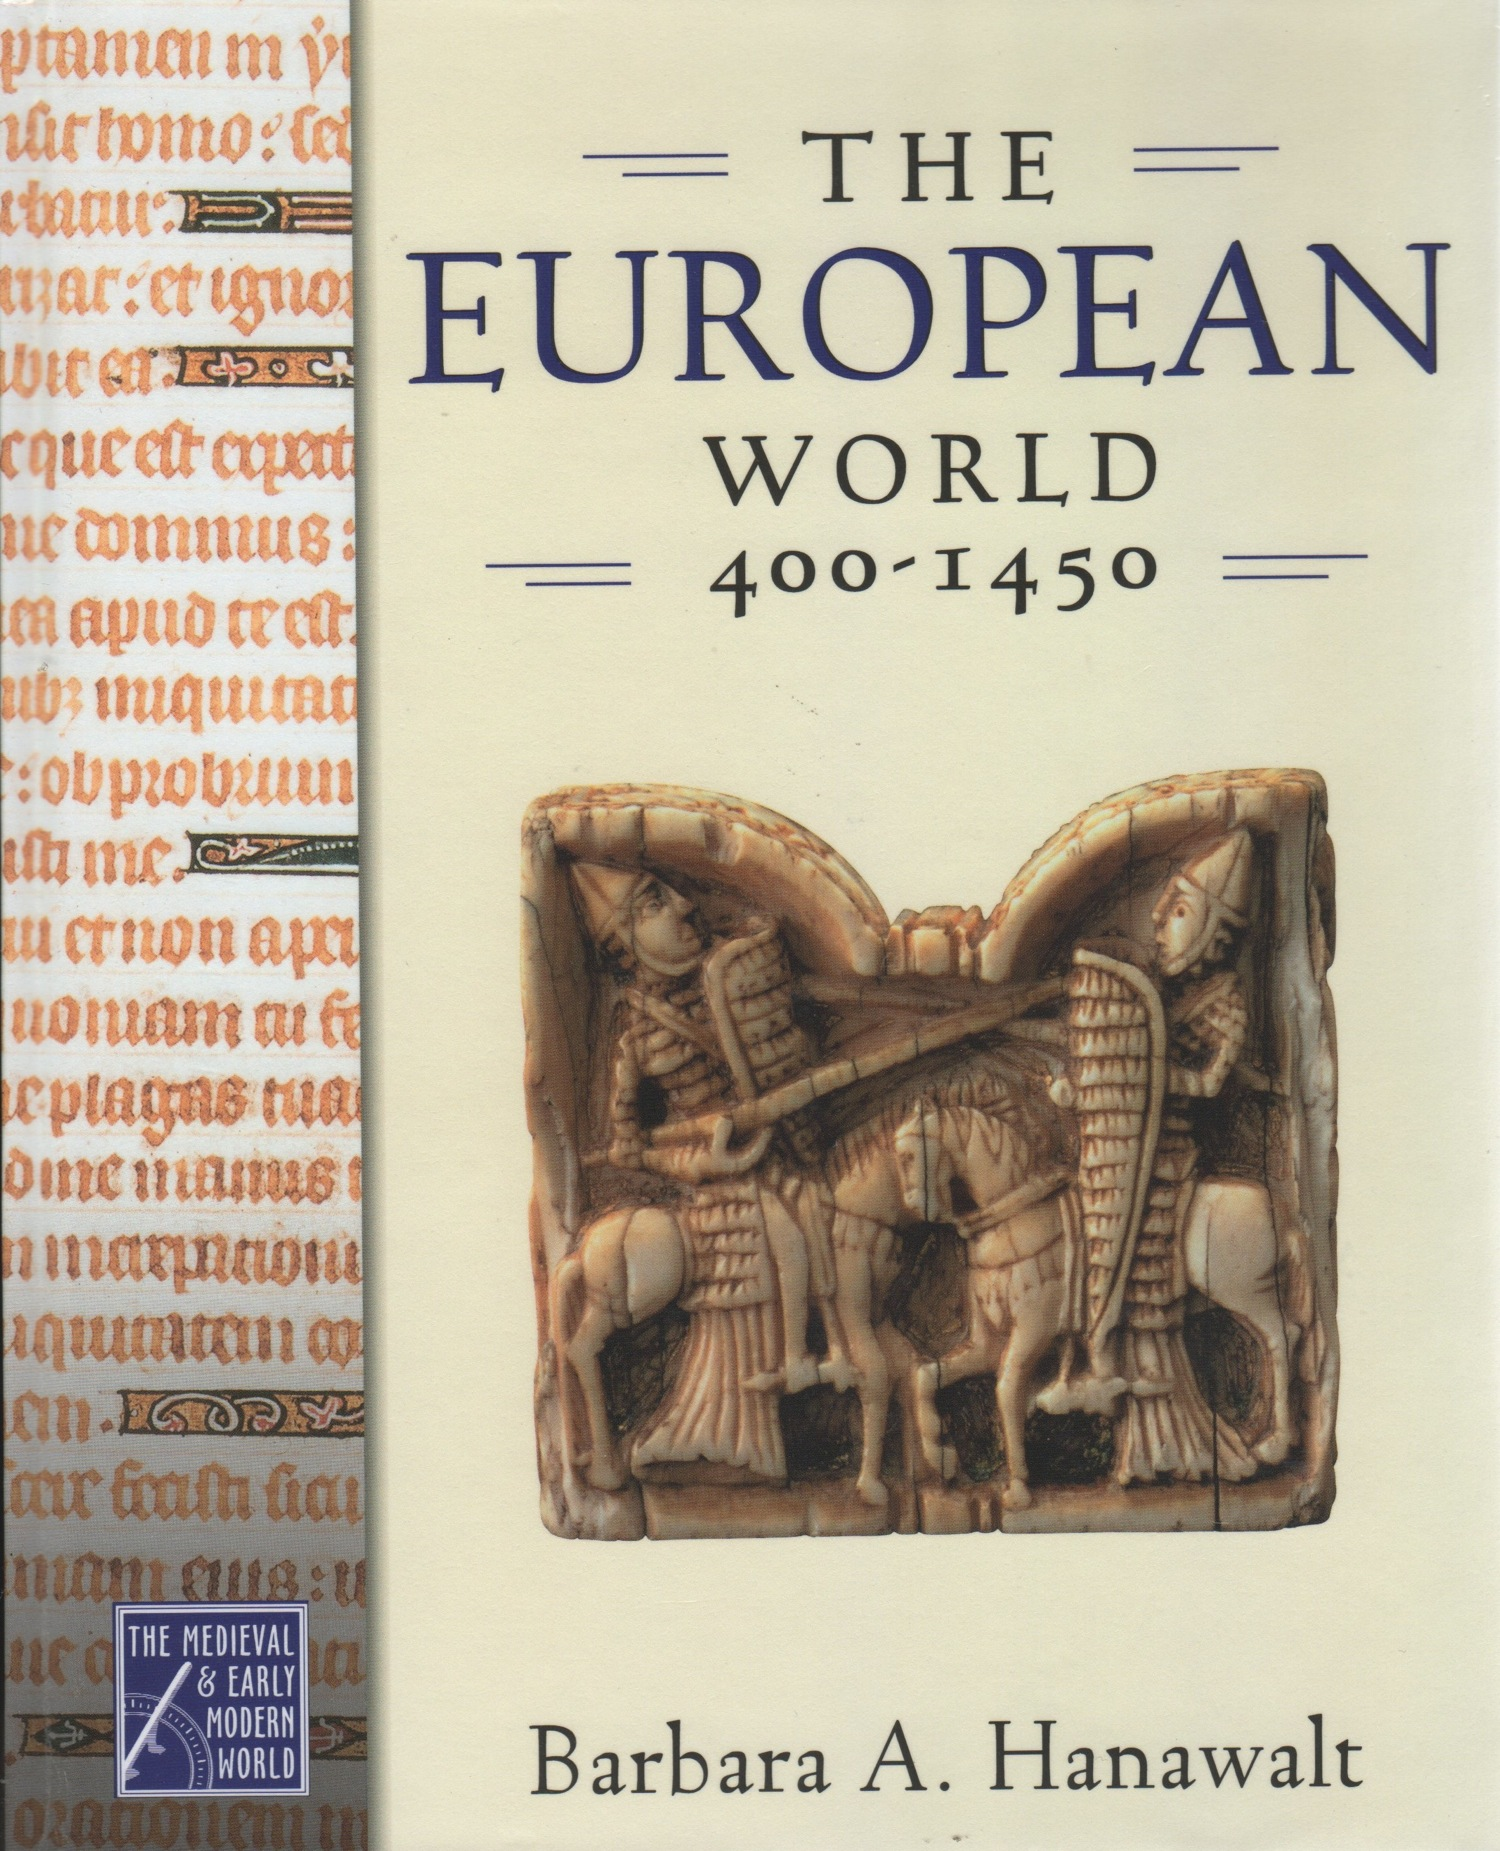 European World 400-1450 copy.jpg